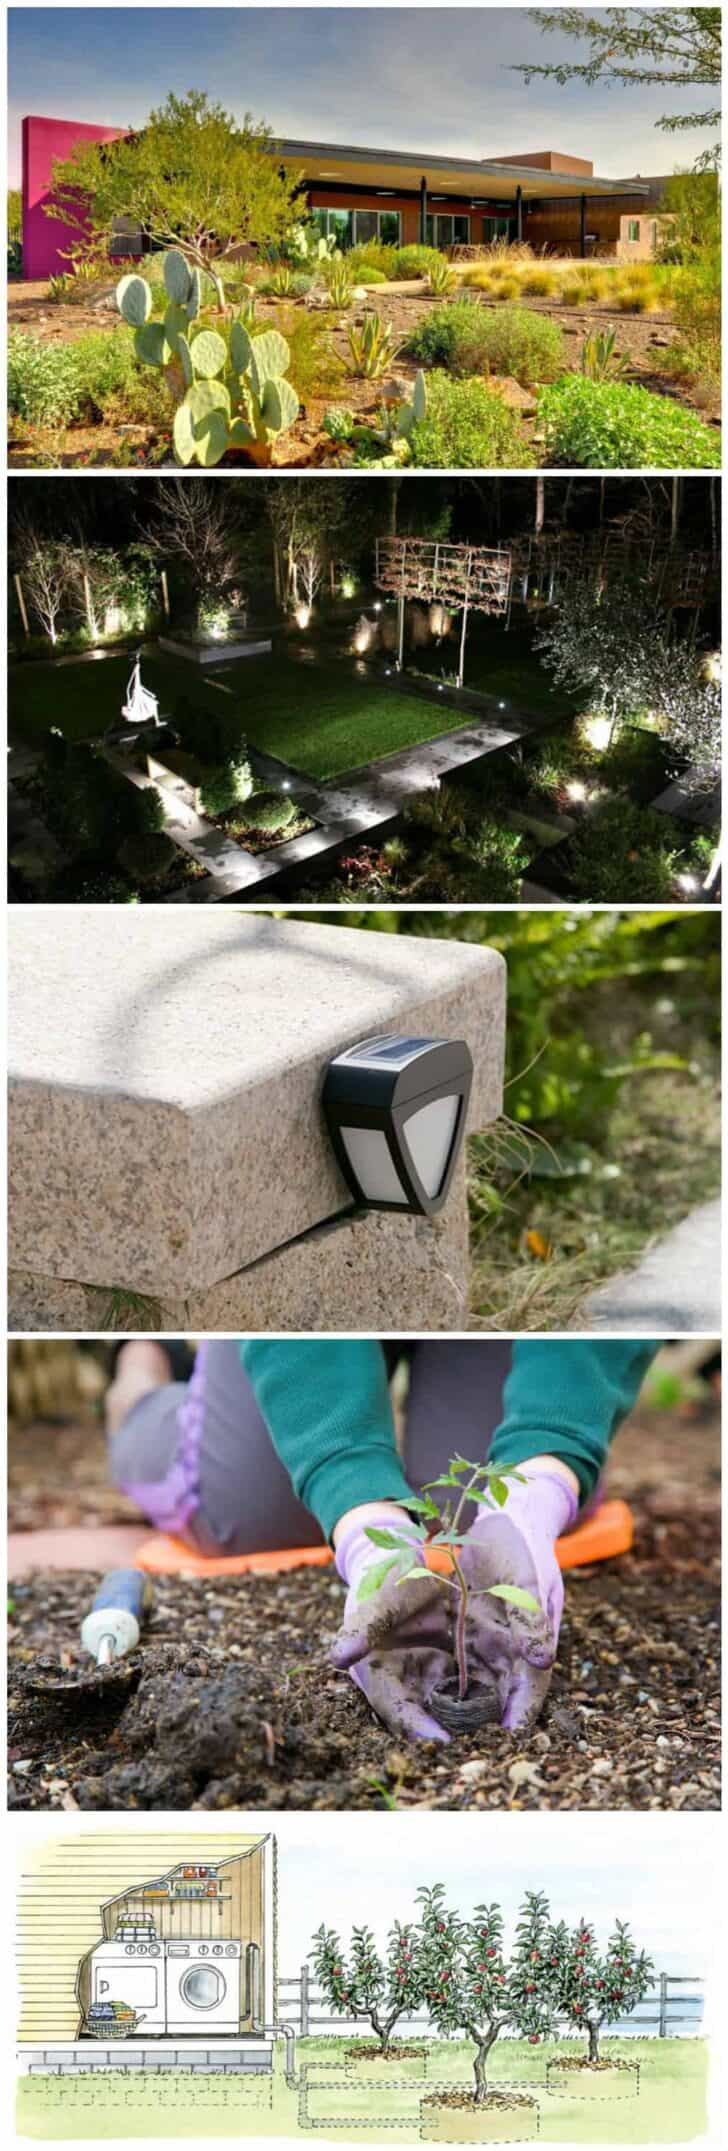 How to Reduce Your Carbon Footprint Outside 8 - Outdoor Lighting